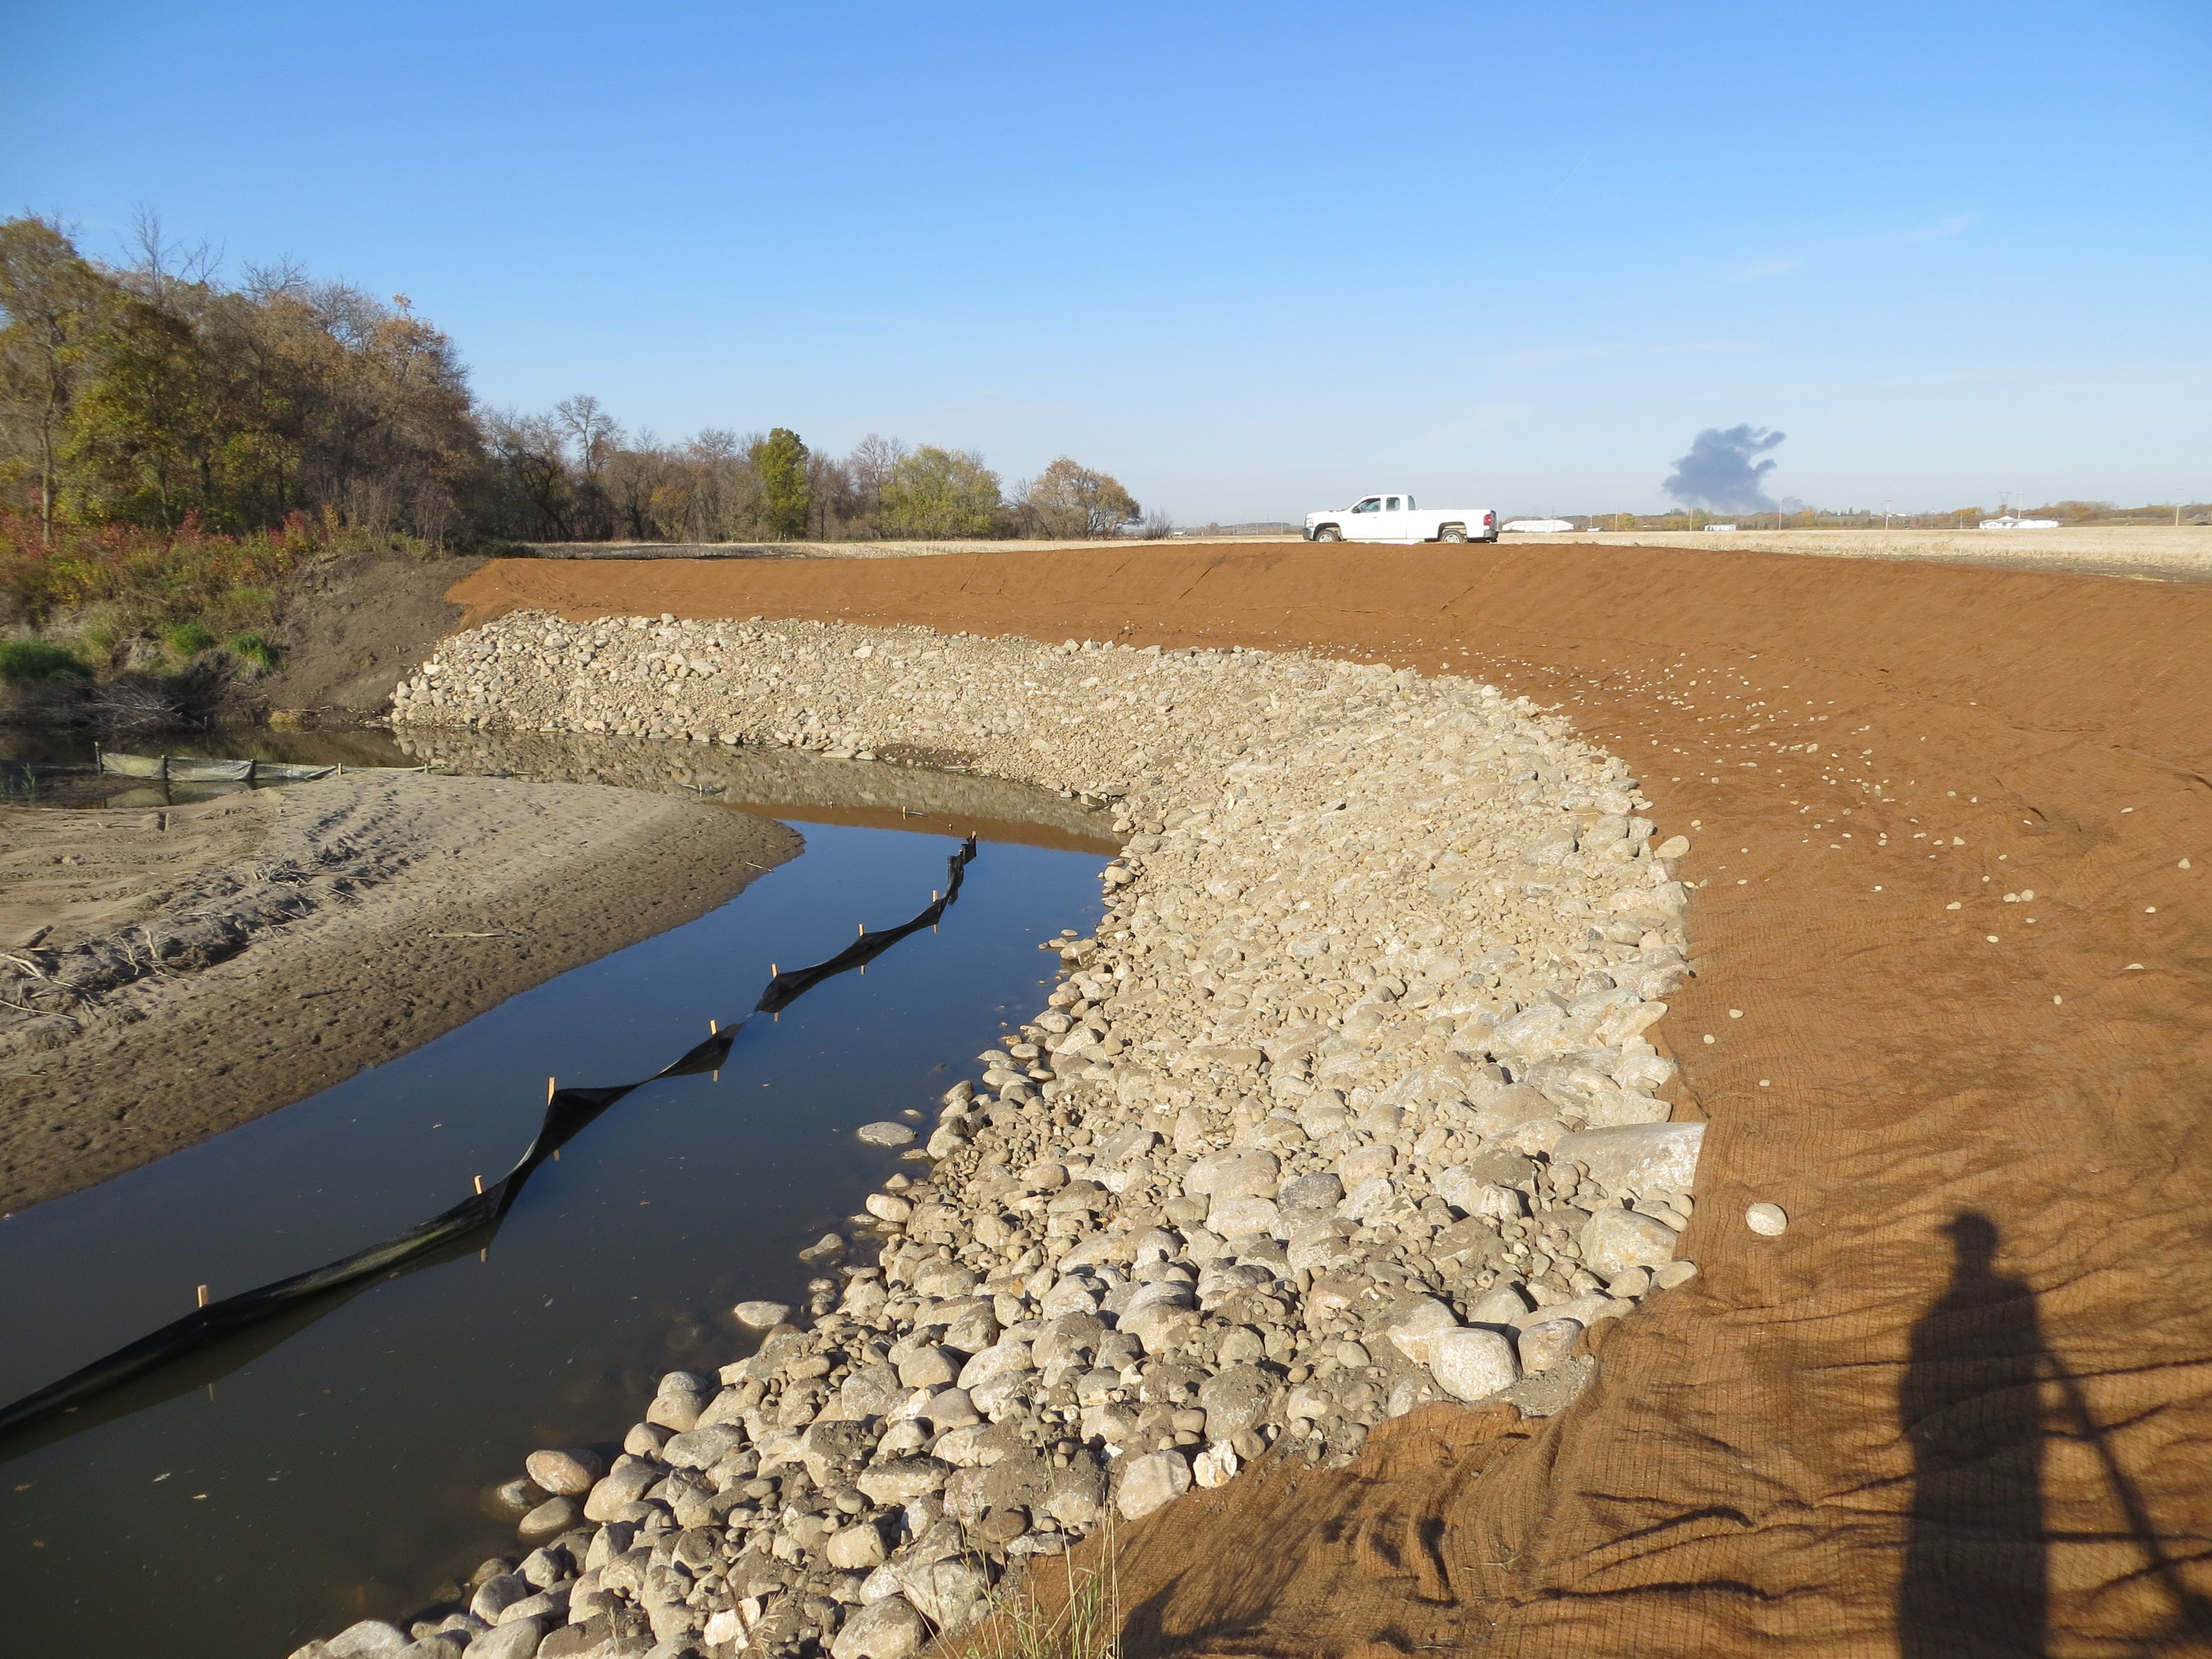 Bank stabilization project why prevent soil erosion for Soil erosion prevention